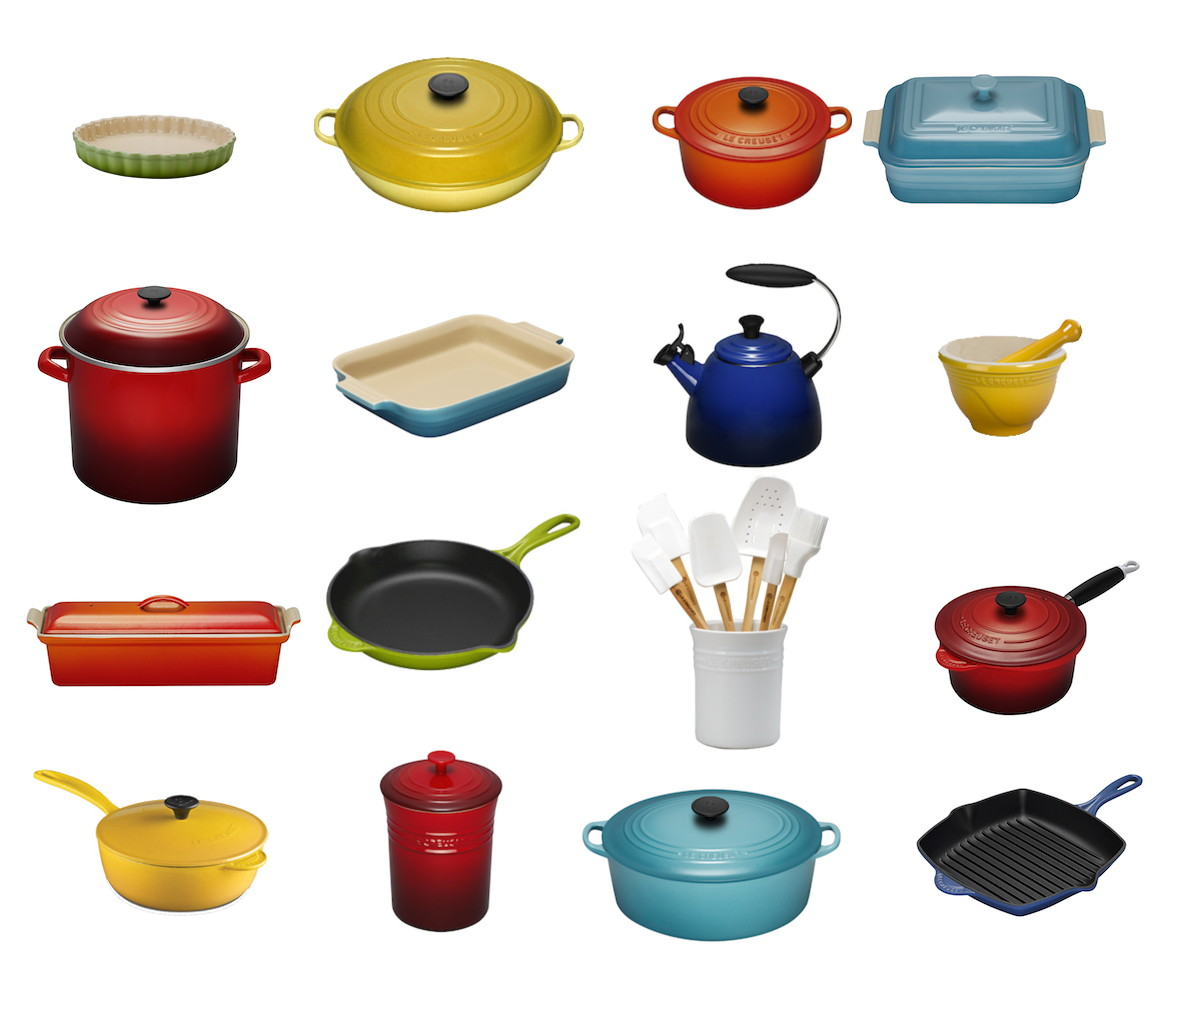 Amazing Le Creuset Colors 1188 x 1029 · 135 kB · jpeg